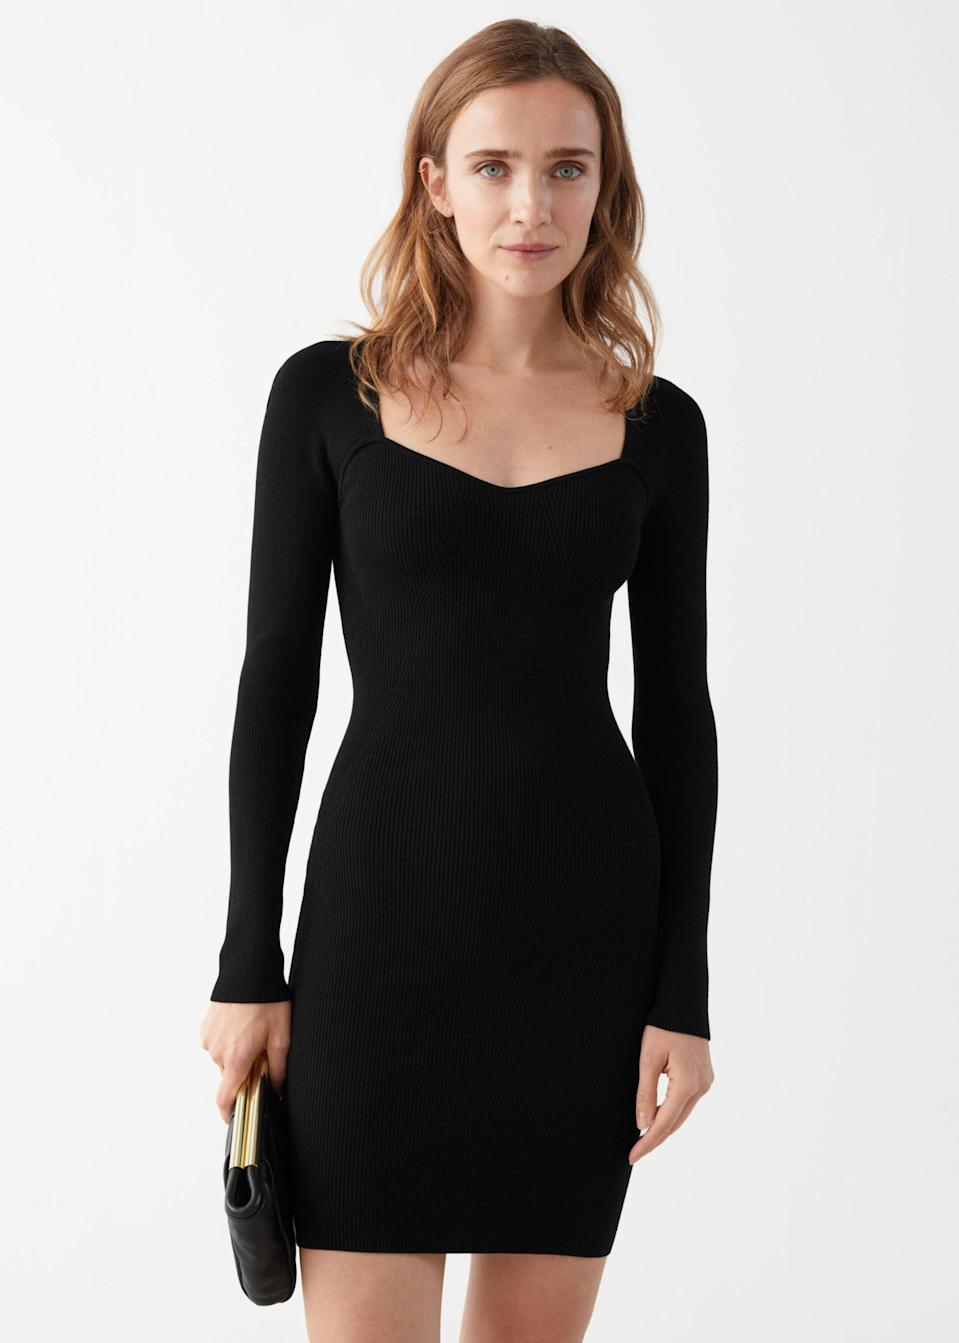 <p>Have a date night coming up? This <span>&amp; Other Stories Ribbed Sweetheart Neck Bustier Mini Dress</span> ($59, originally $119) is a flattering choice.</p>